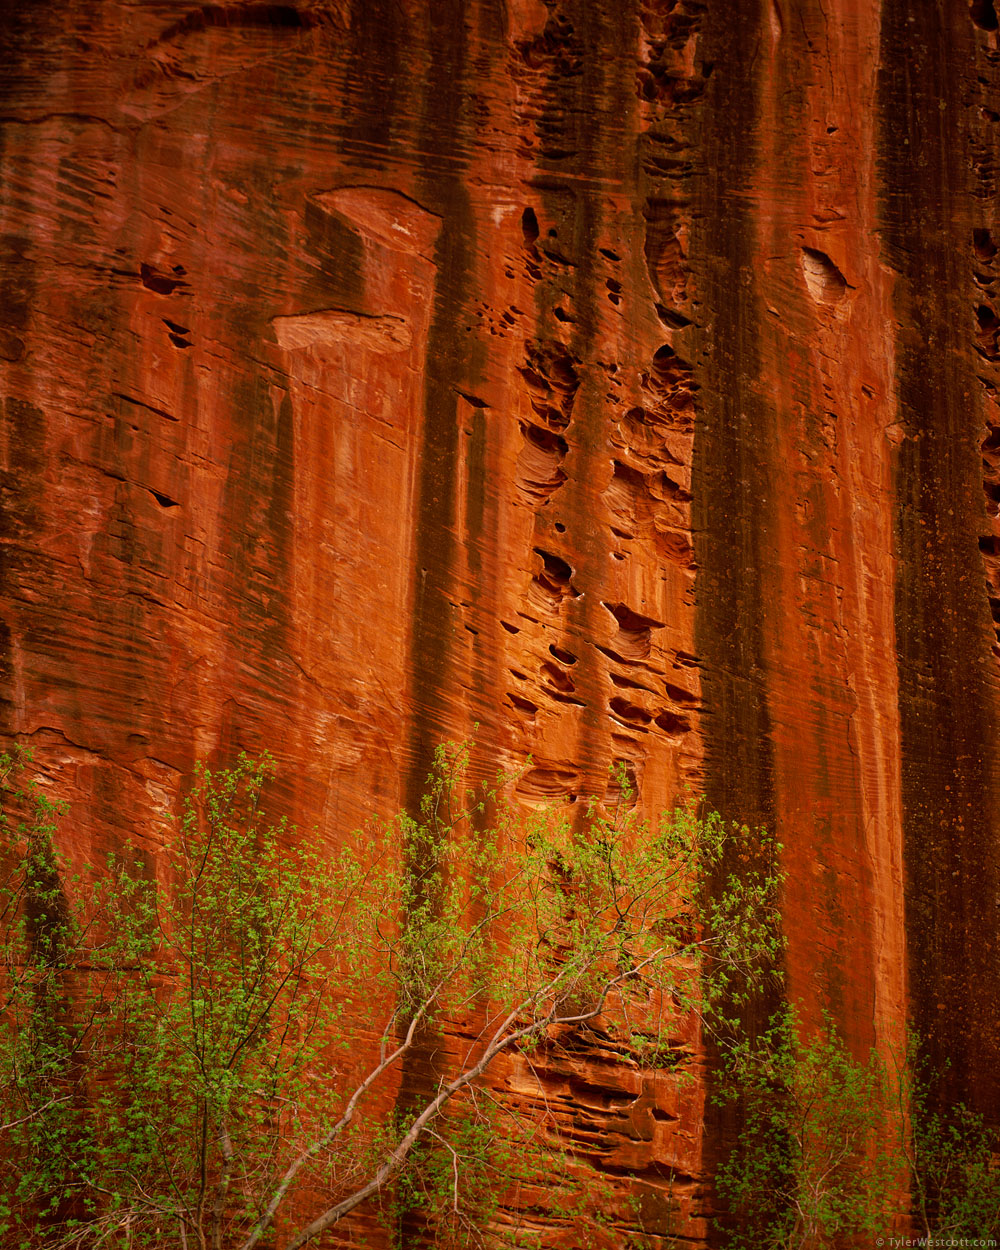 Eroded Wall, Taylor Creek Canyon, Zion National Park